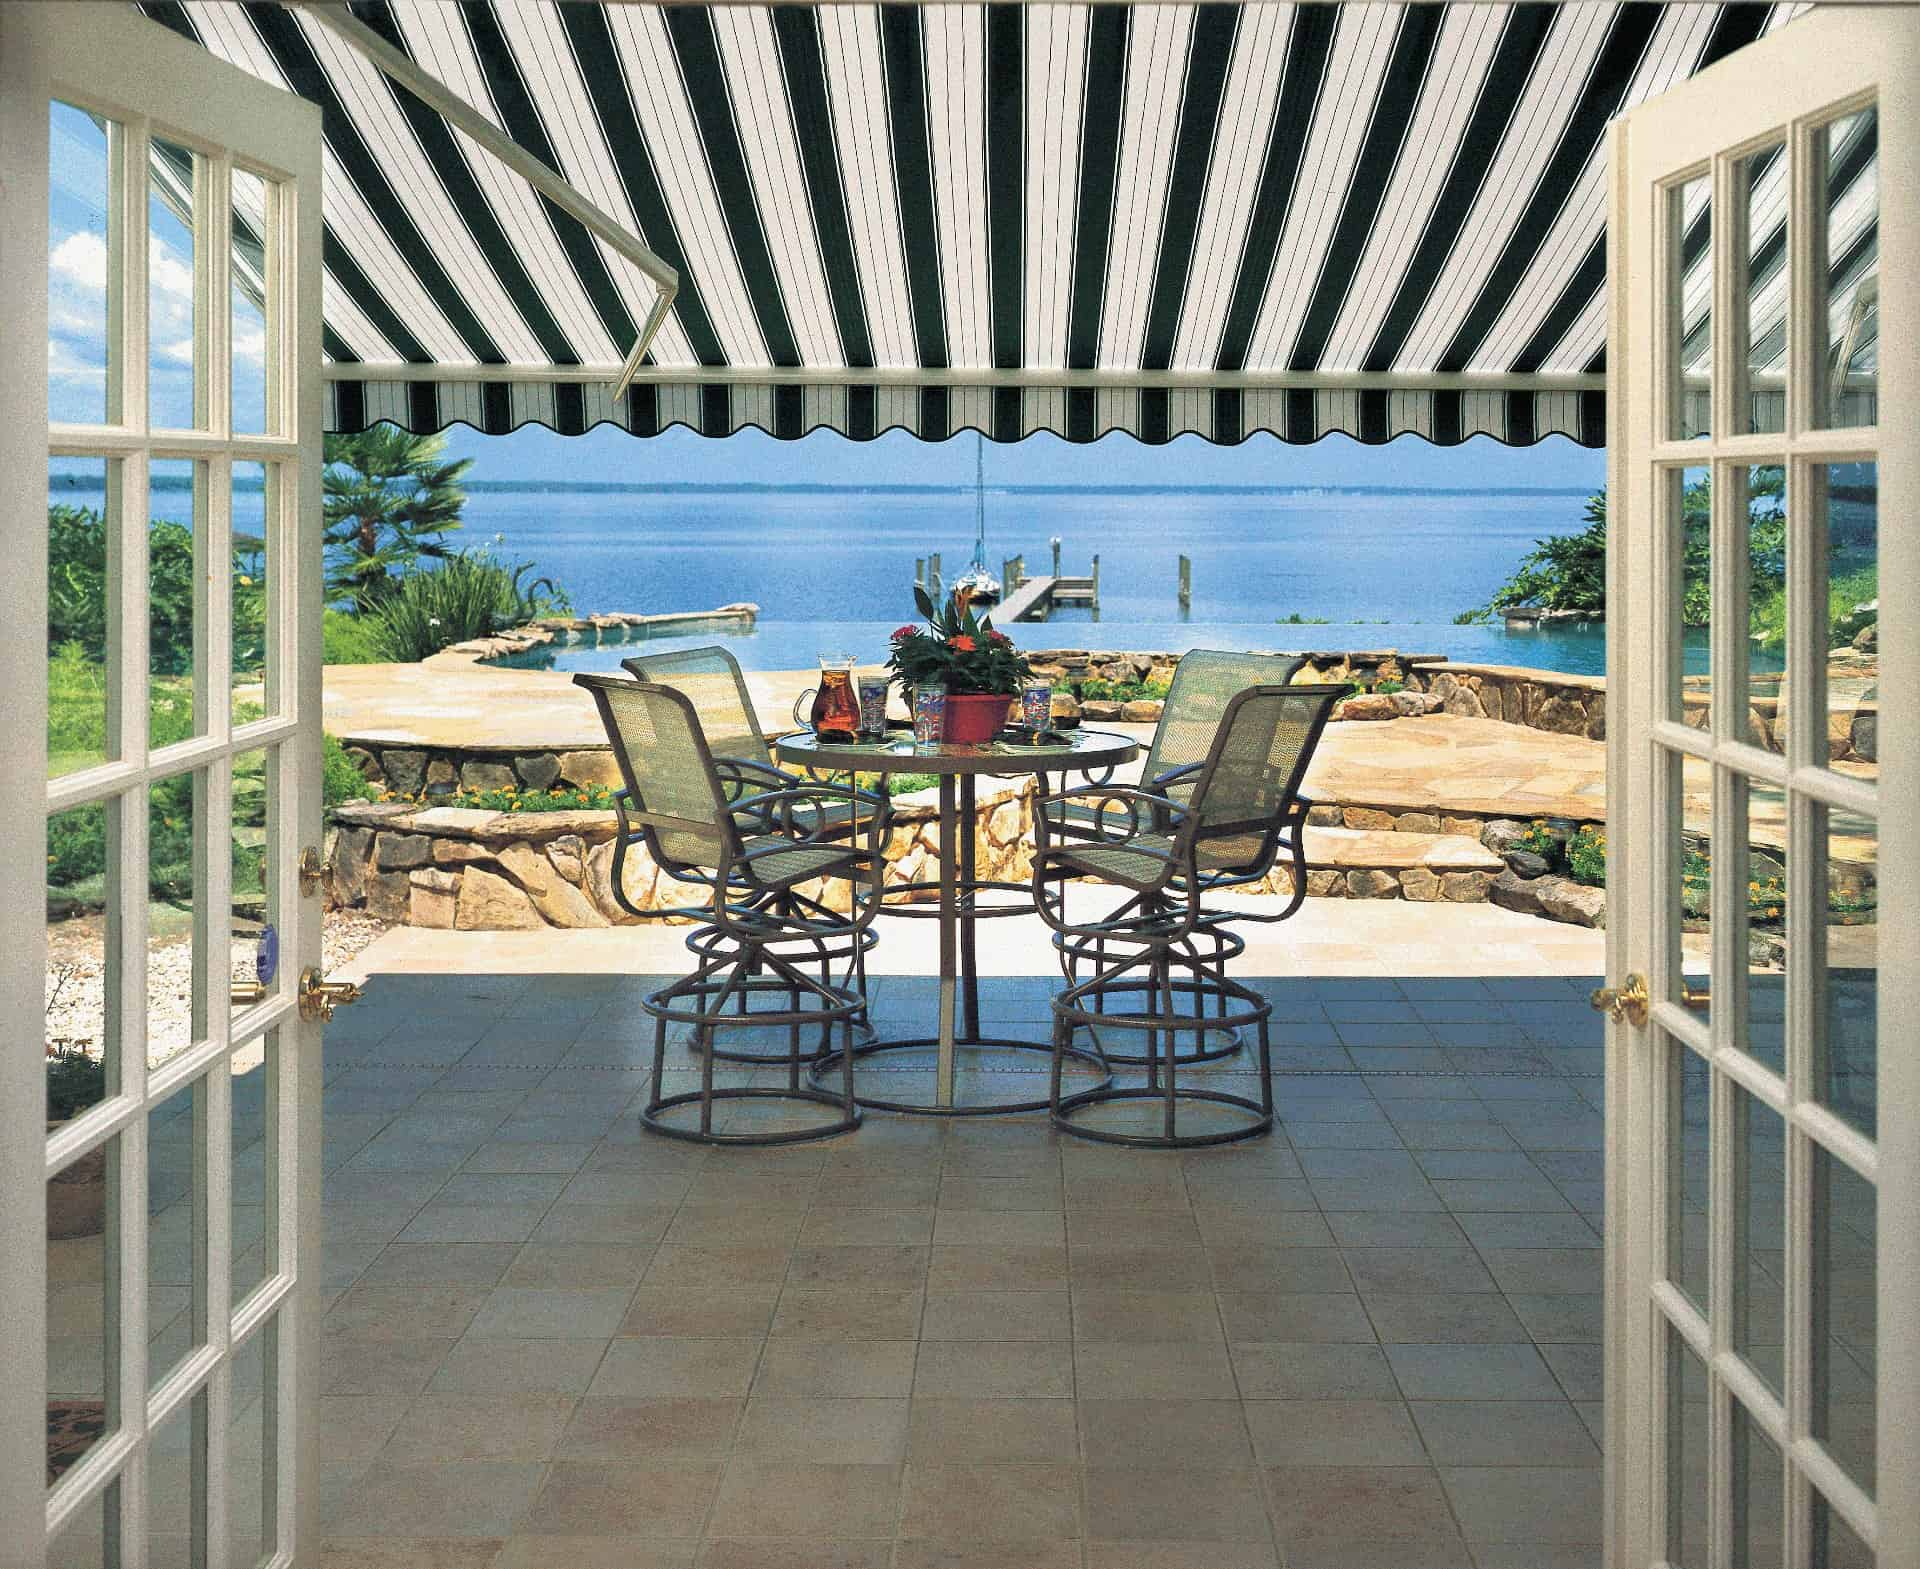 Collingswood Retractable Awnings | Canvas & Permanent Awnings